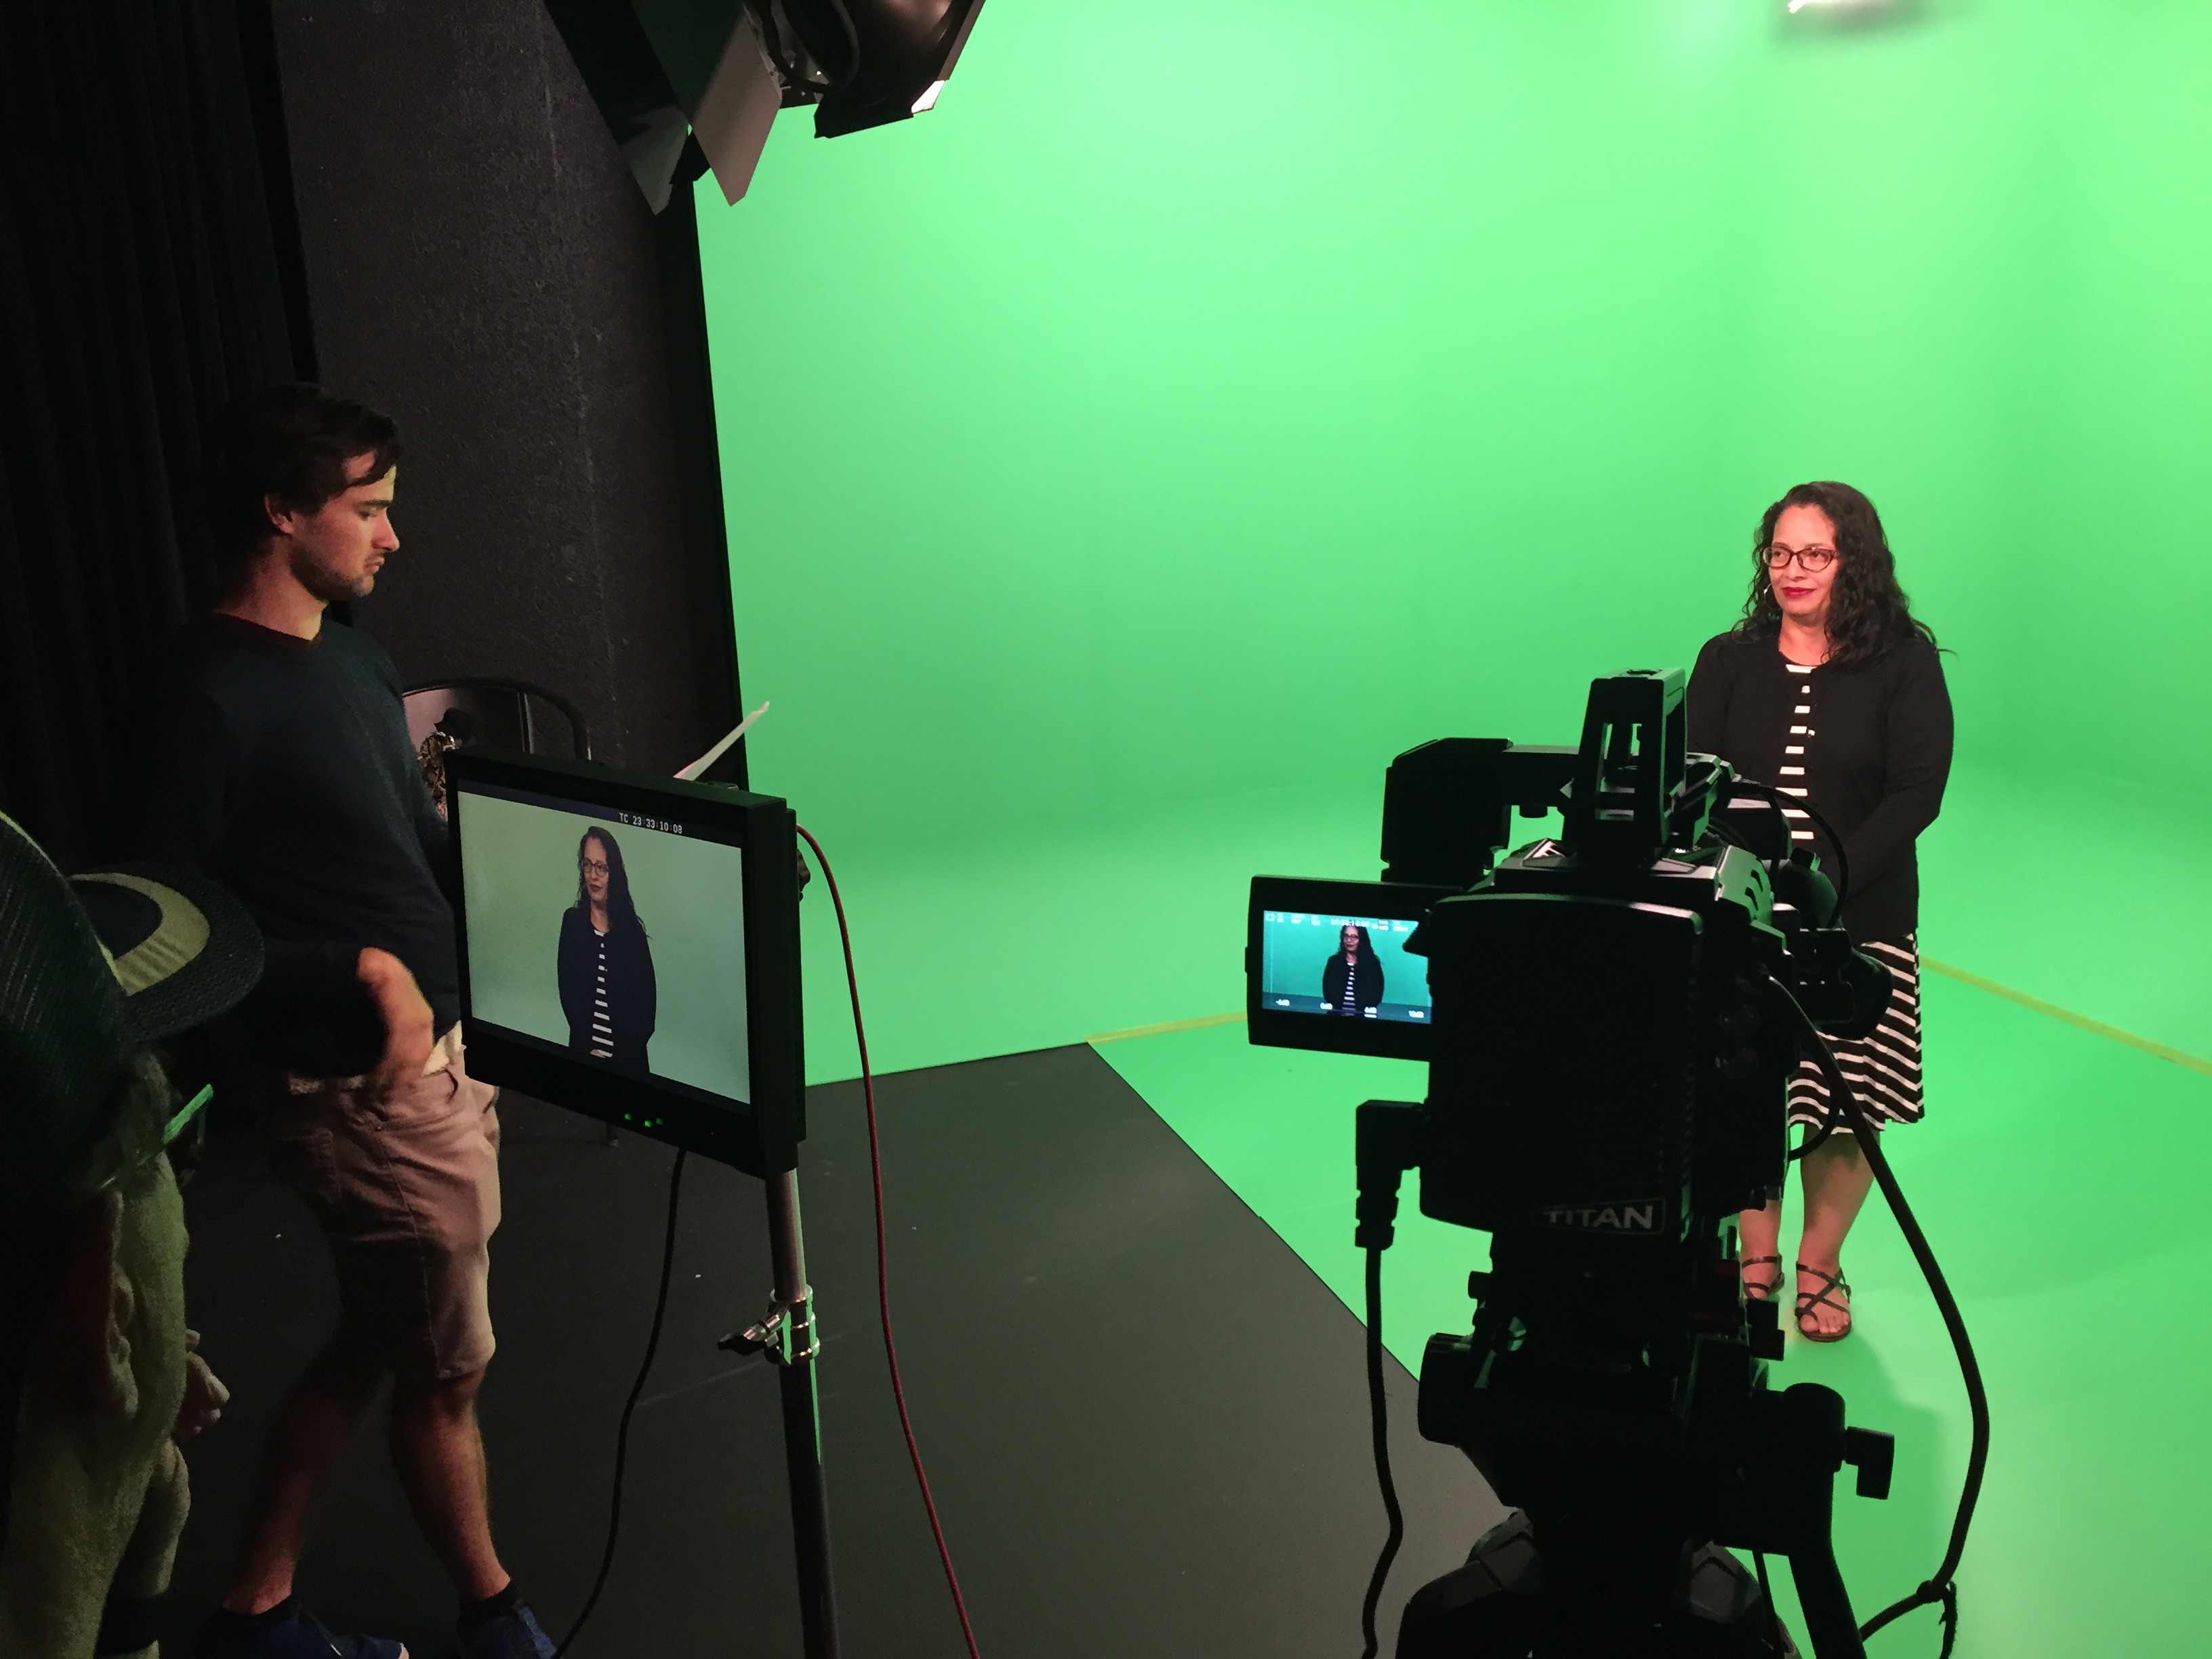 Gideon Firl discussing the film with Norma Moran as she stood inside of green screen area. Cameras and monitors are visible in this photo.